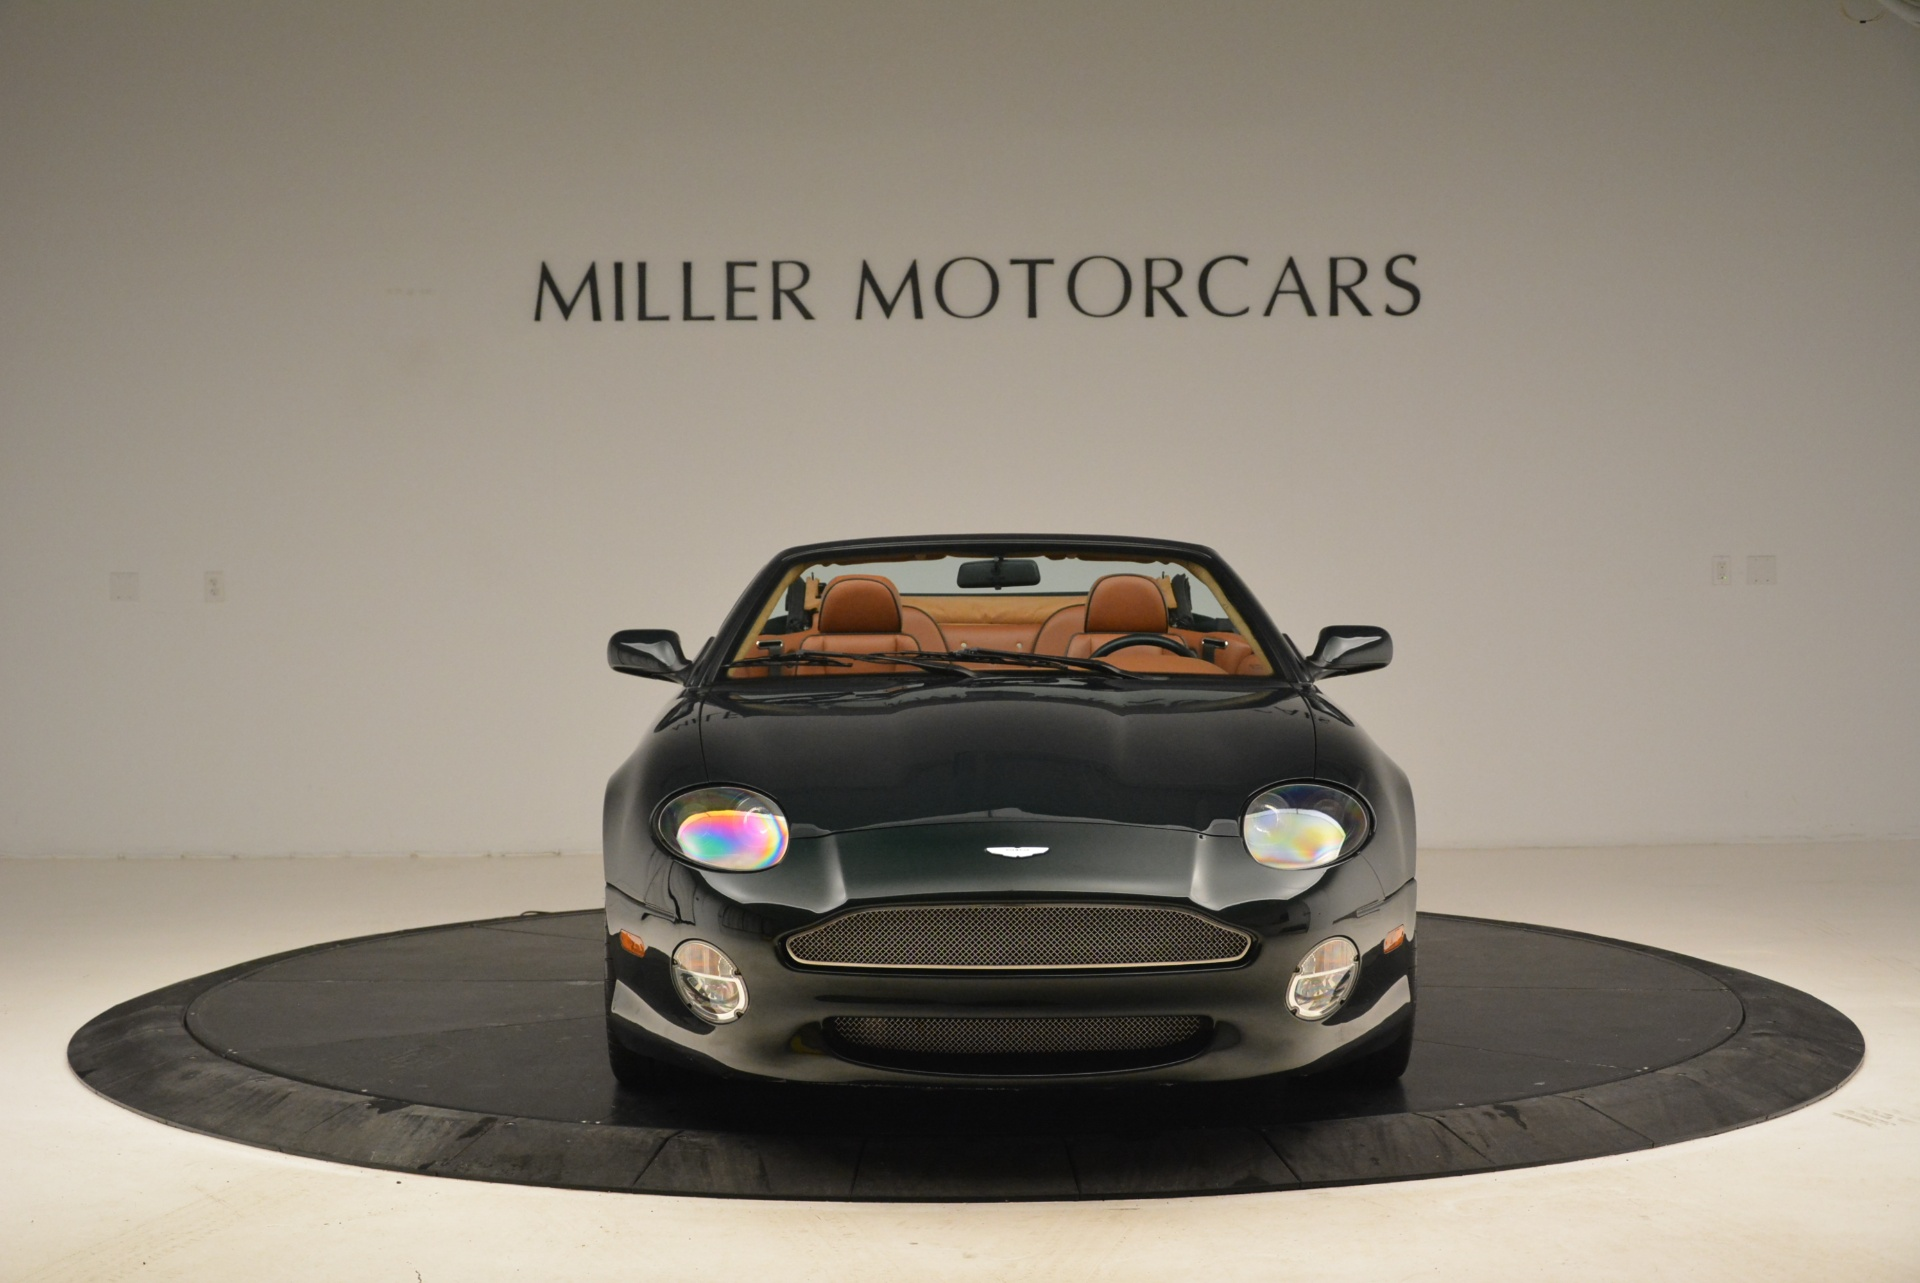 Used 2003 Aston Martin DB7 Vantage Volante For Sale In Westport, CT 2084_p12